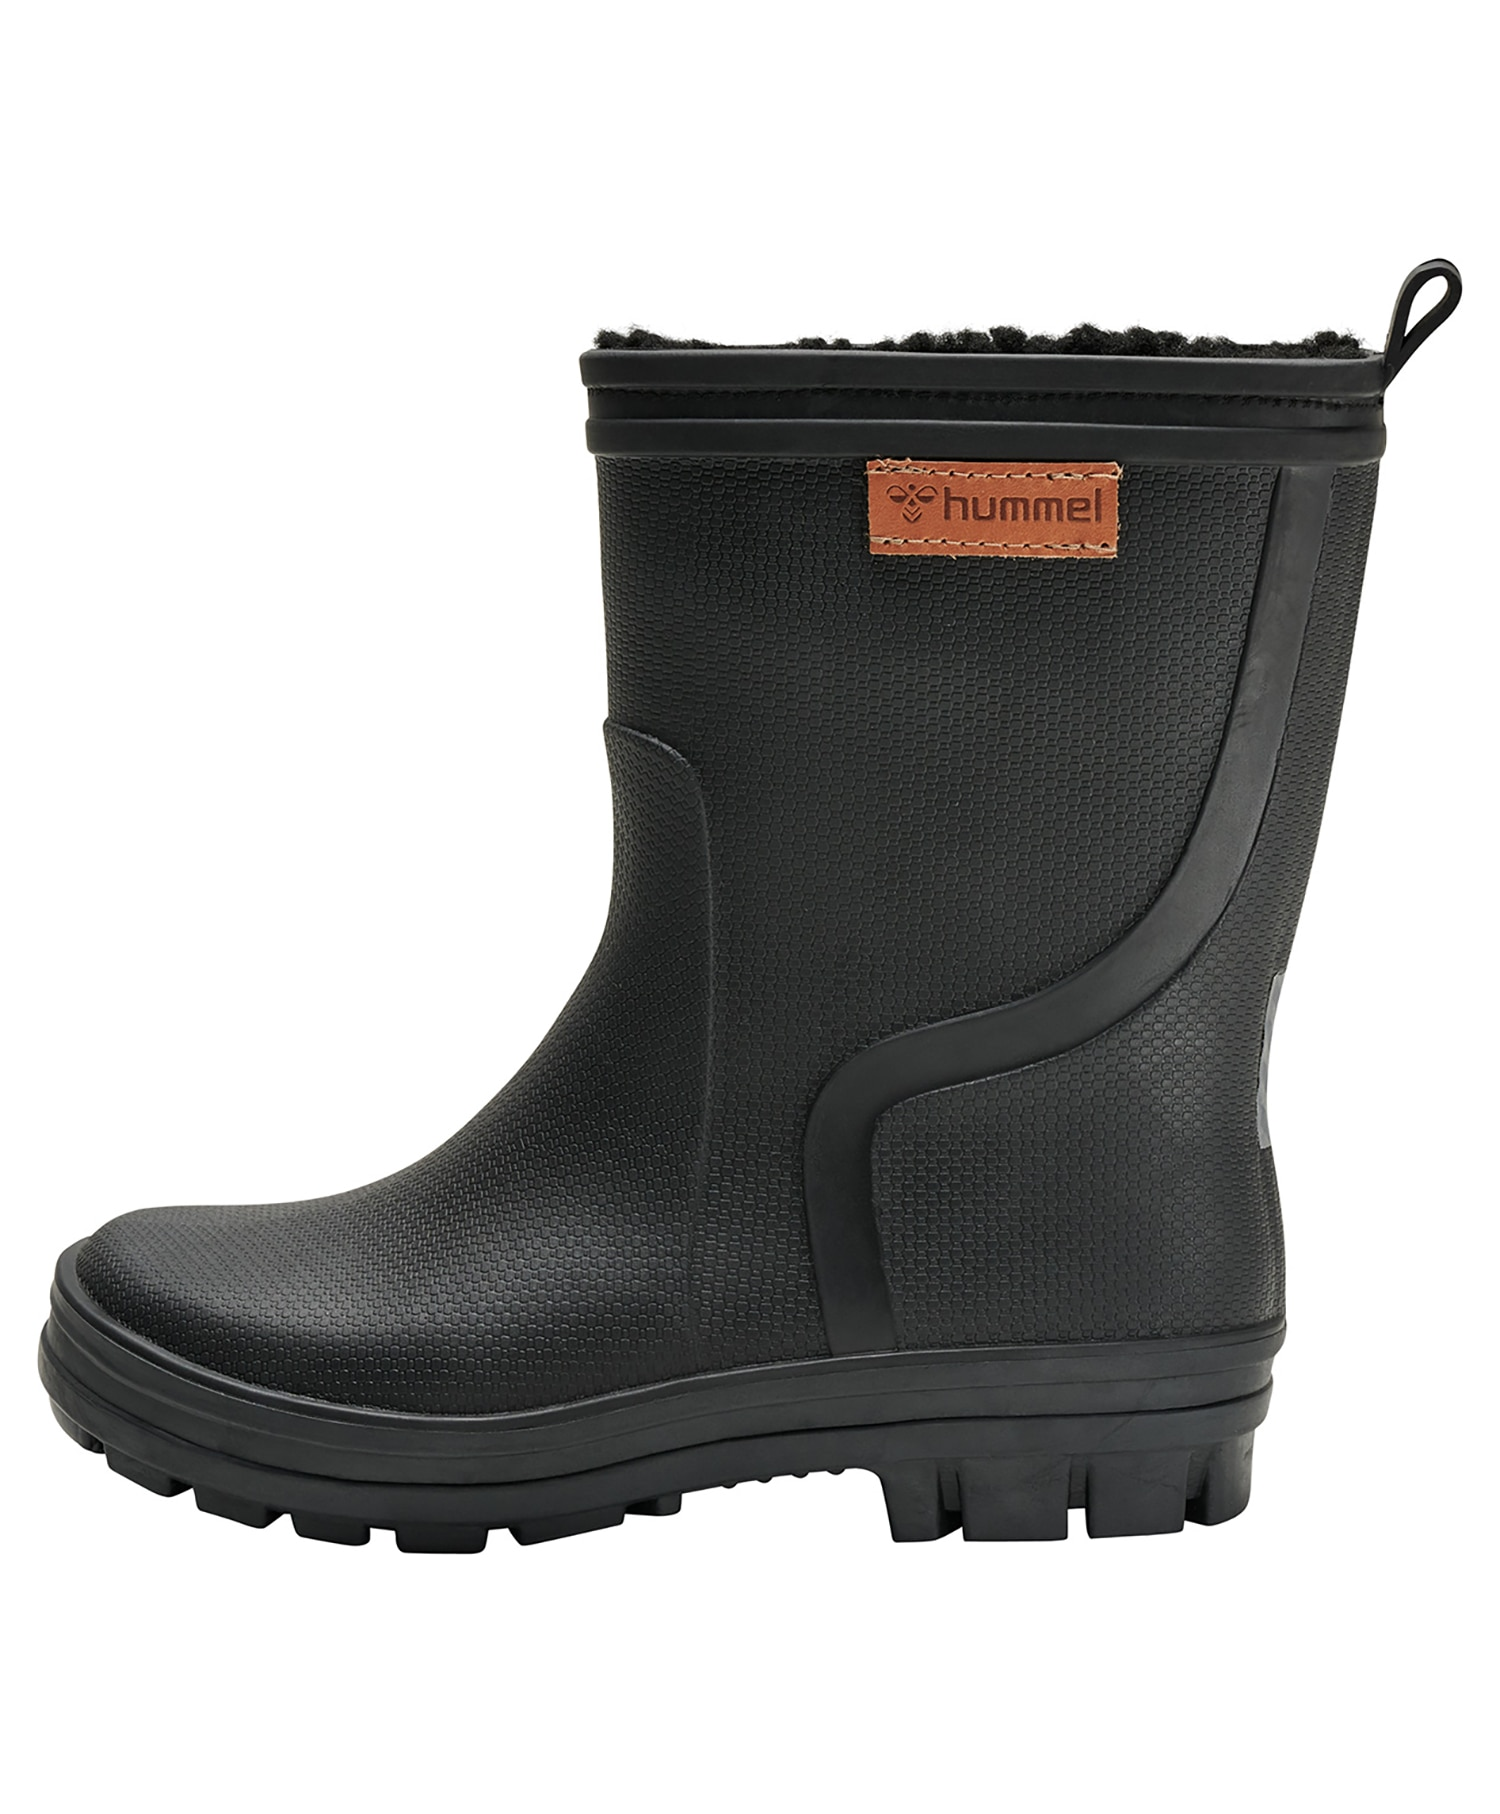 Hummel Thermo boot jr